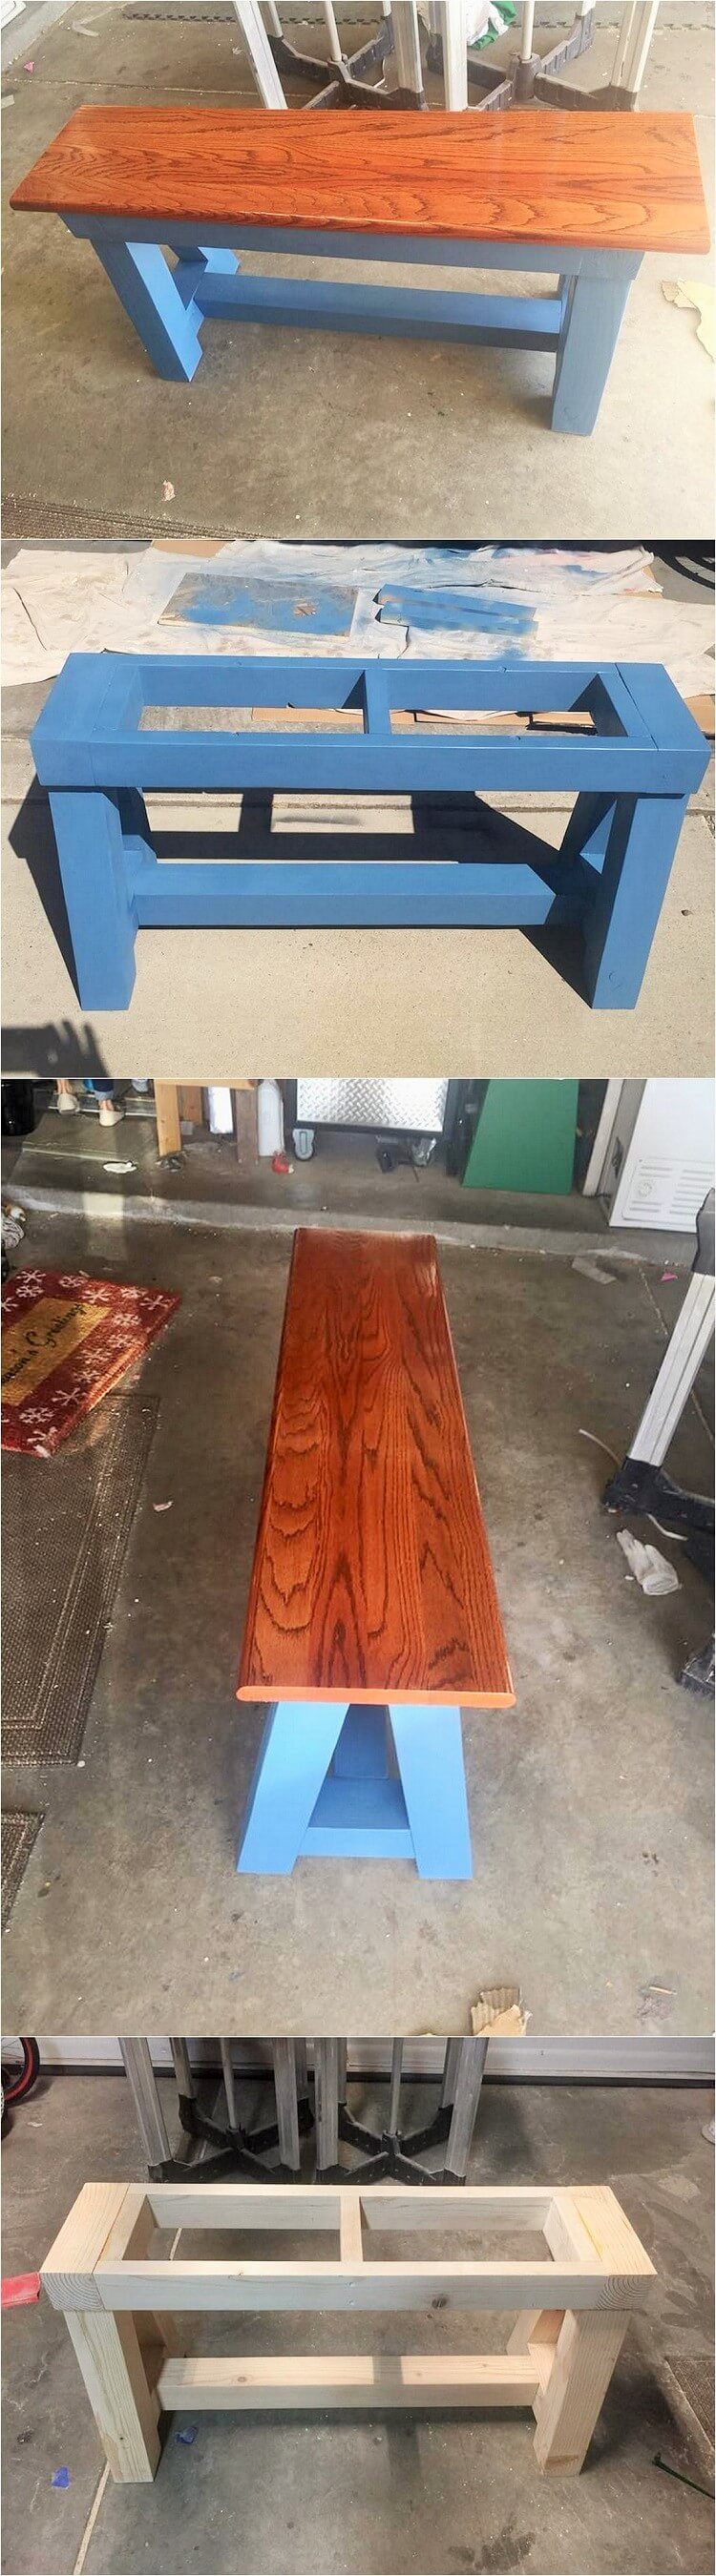 Old-Pallet- Diy-Recycle-Things-Projects-19